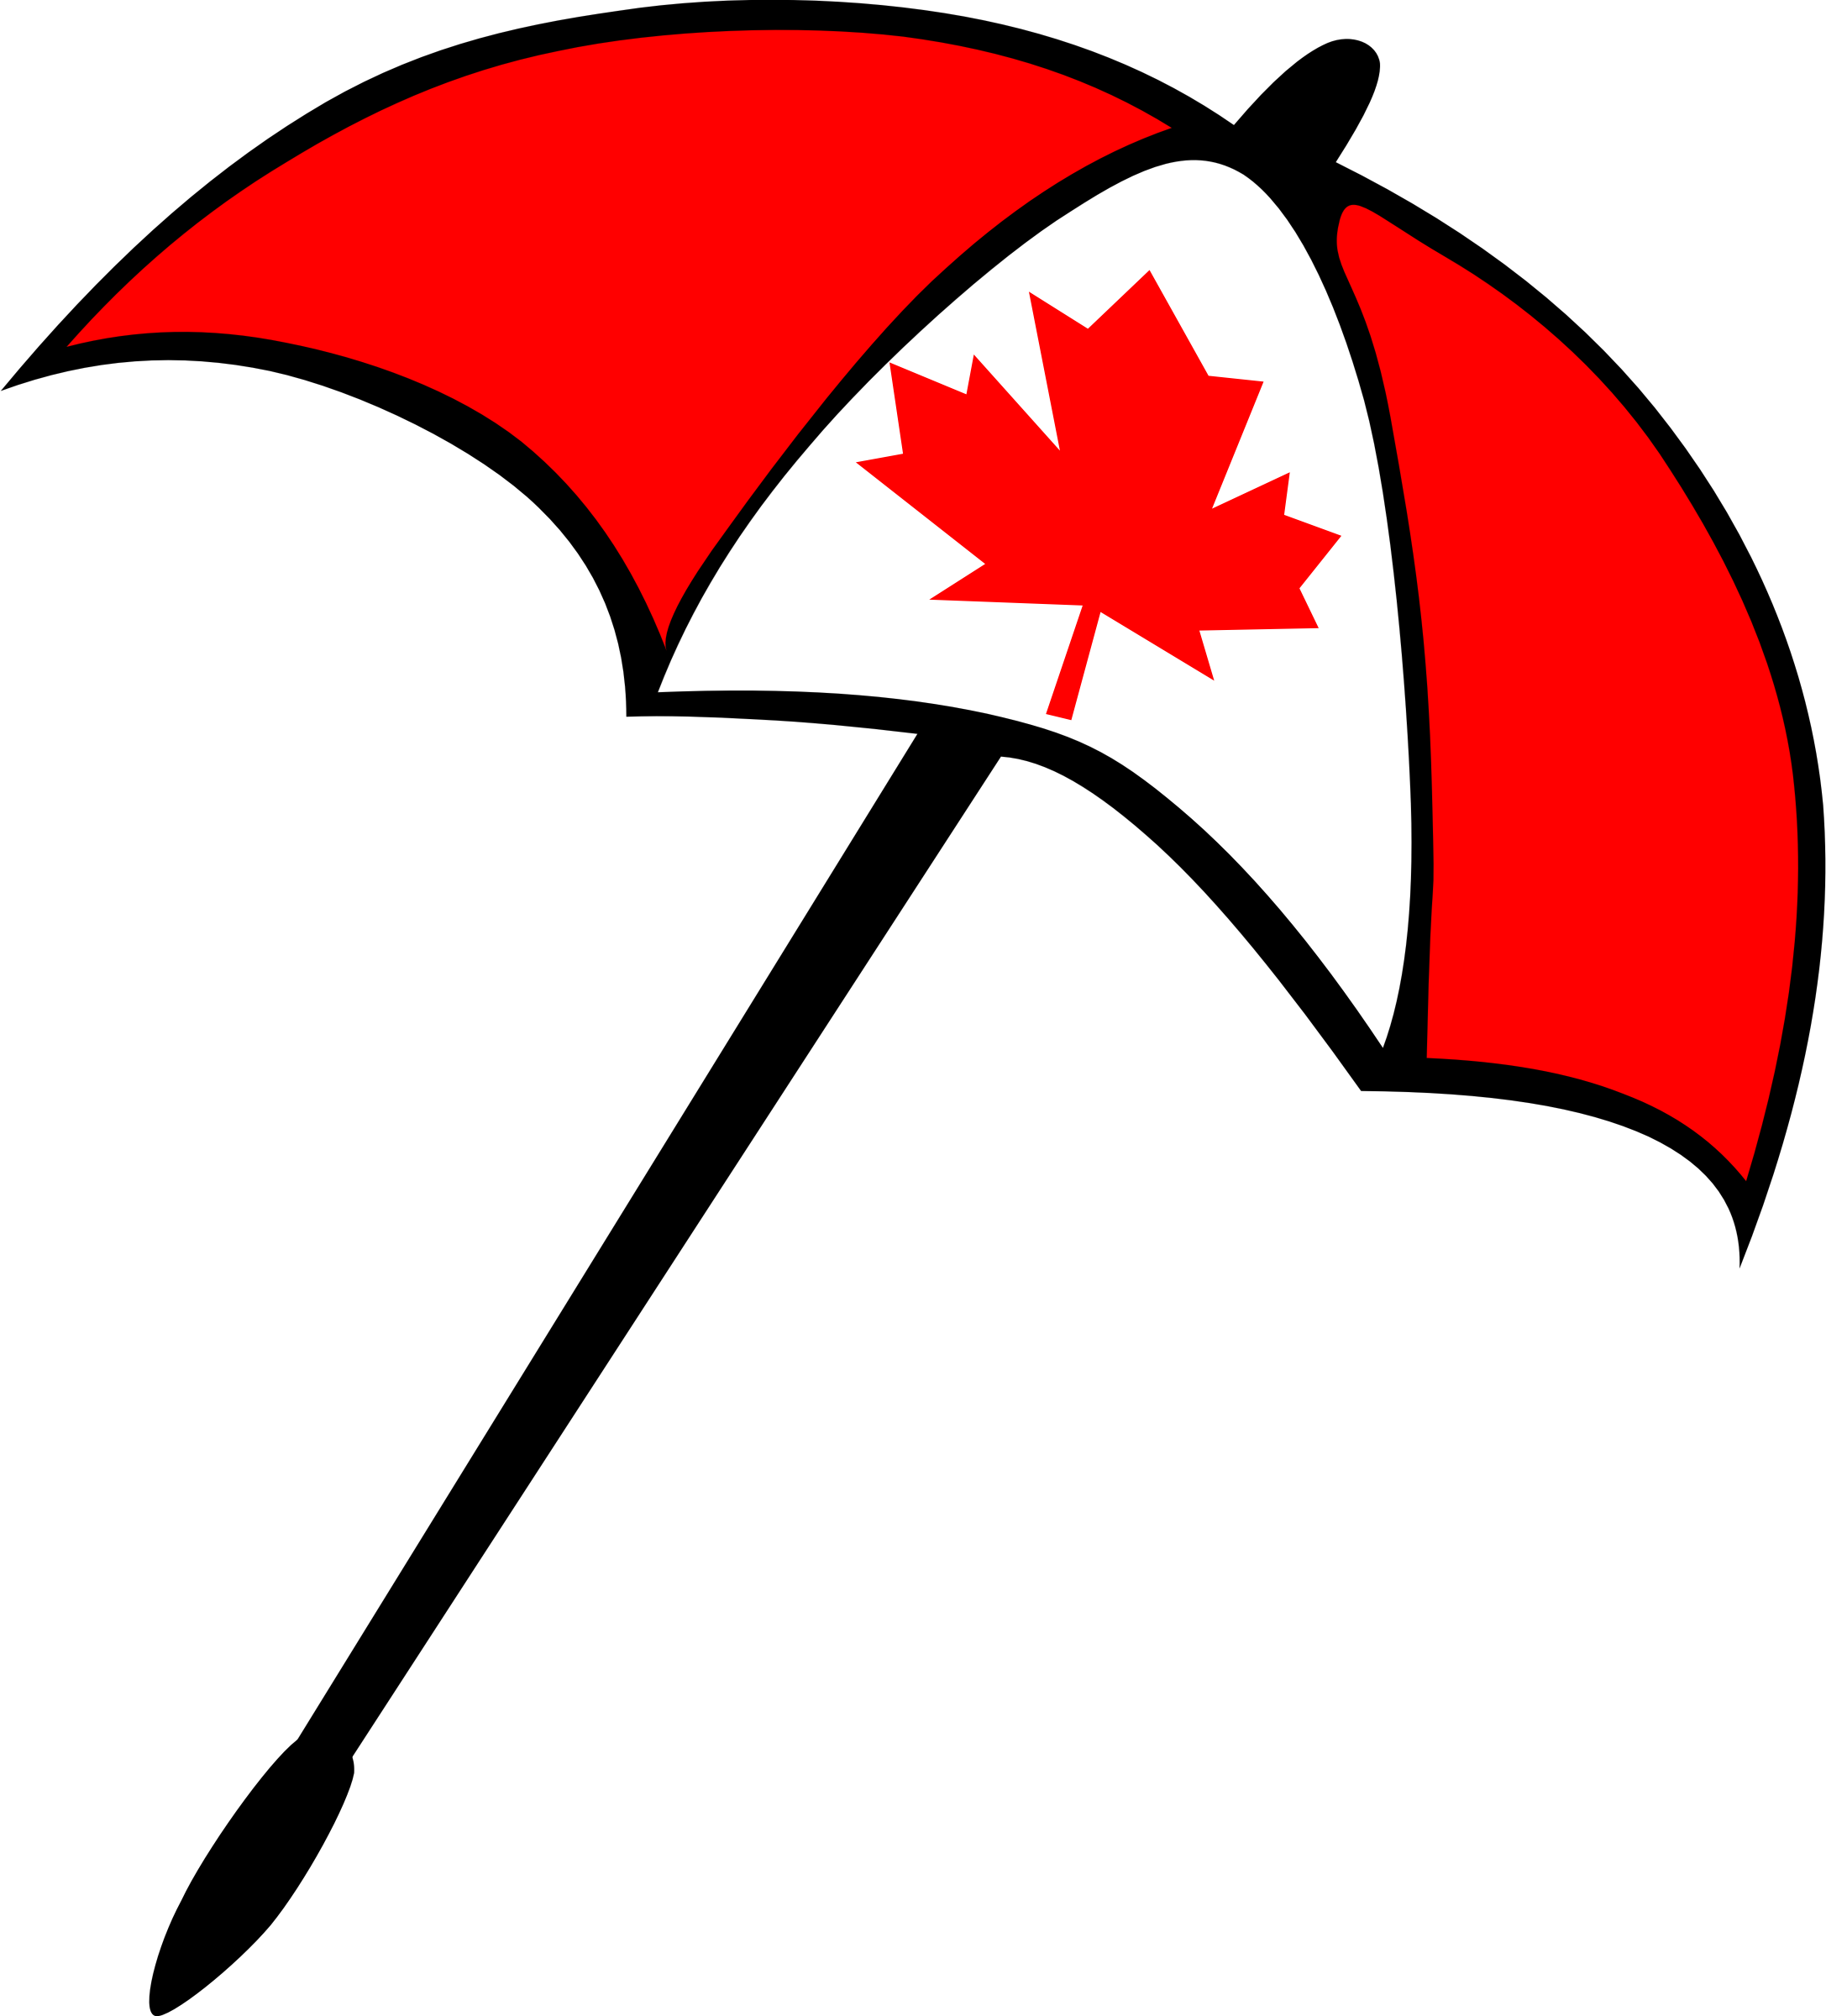 Umbrella - Canada by Gerald_G